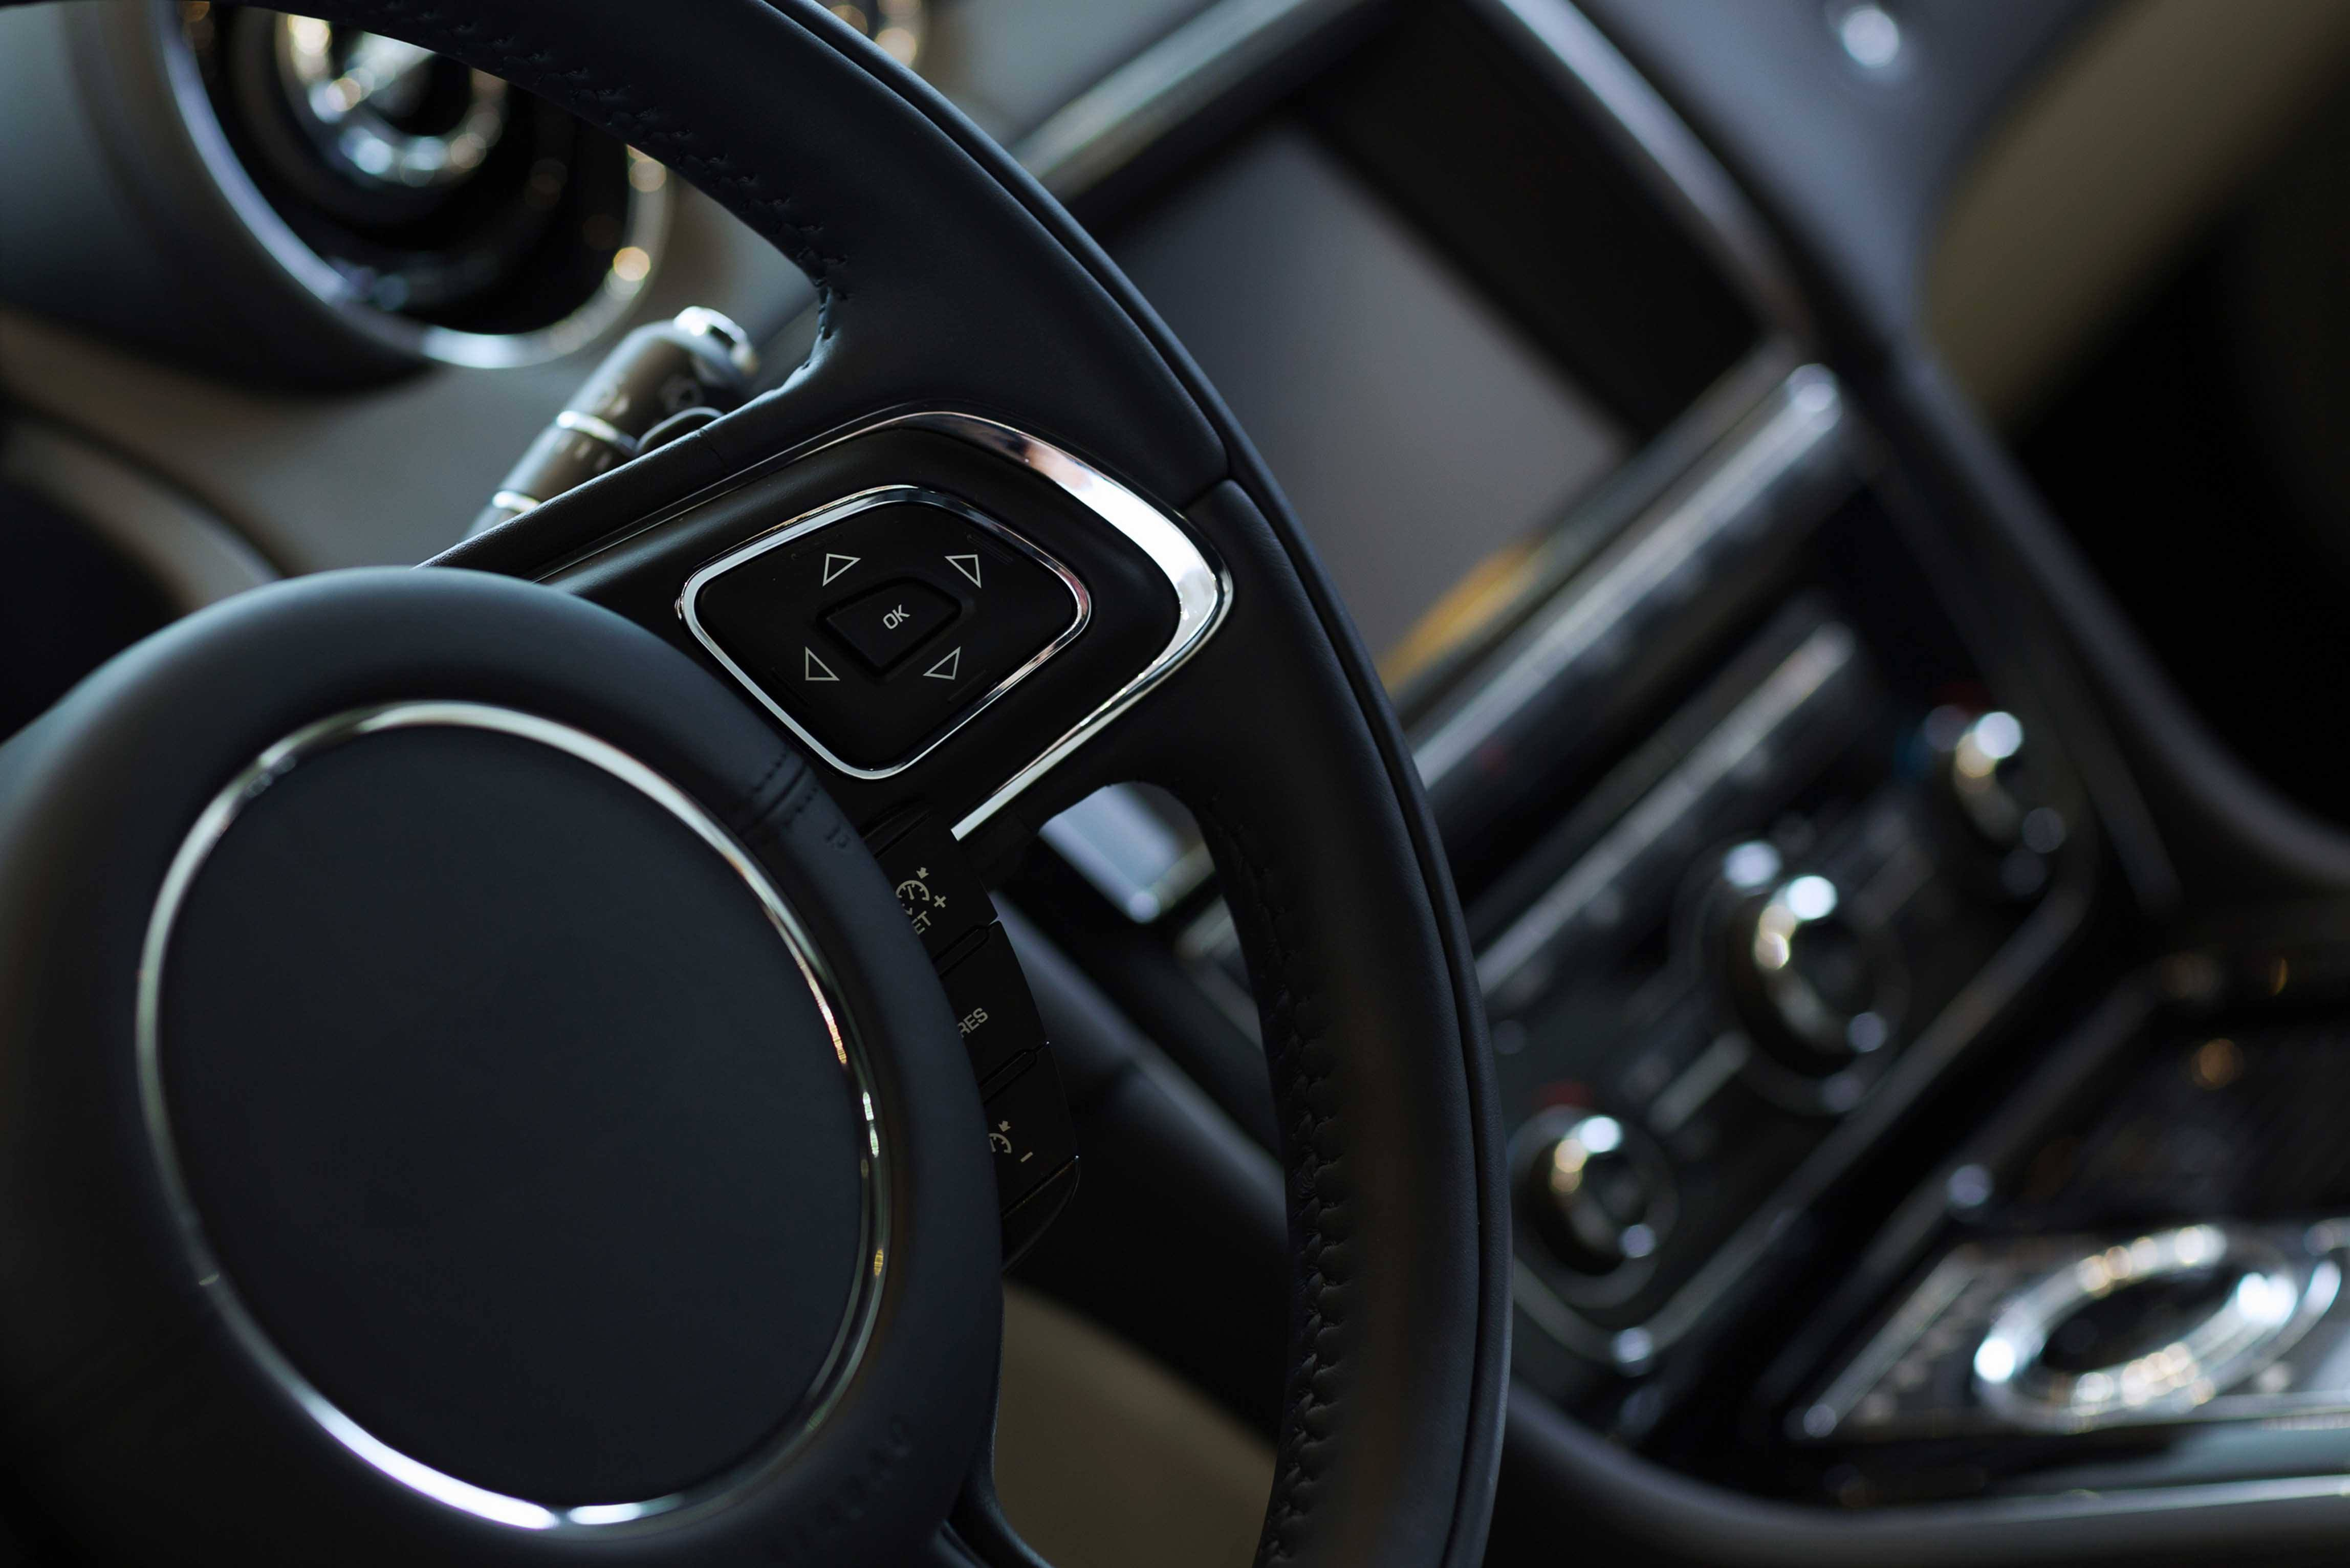 Automotive controls